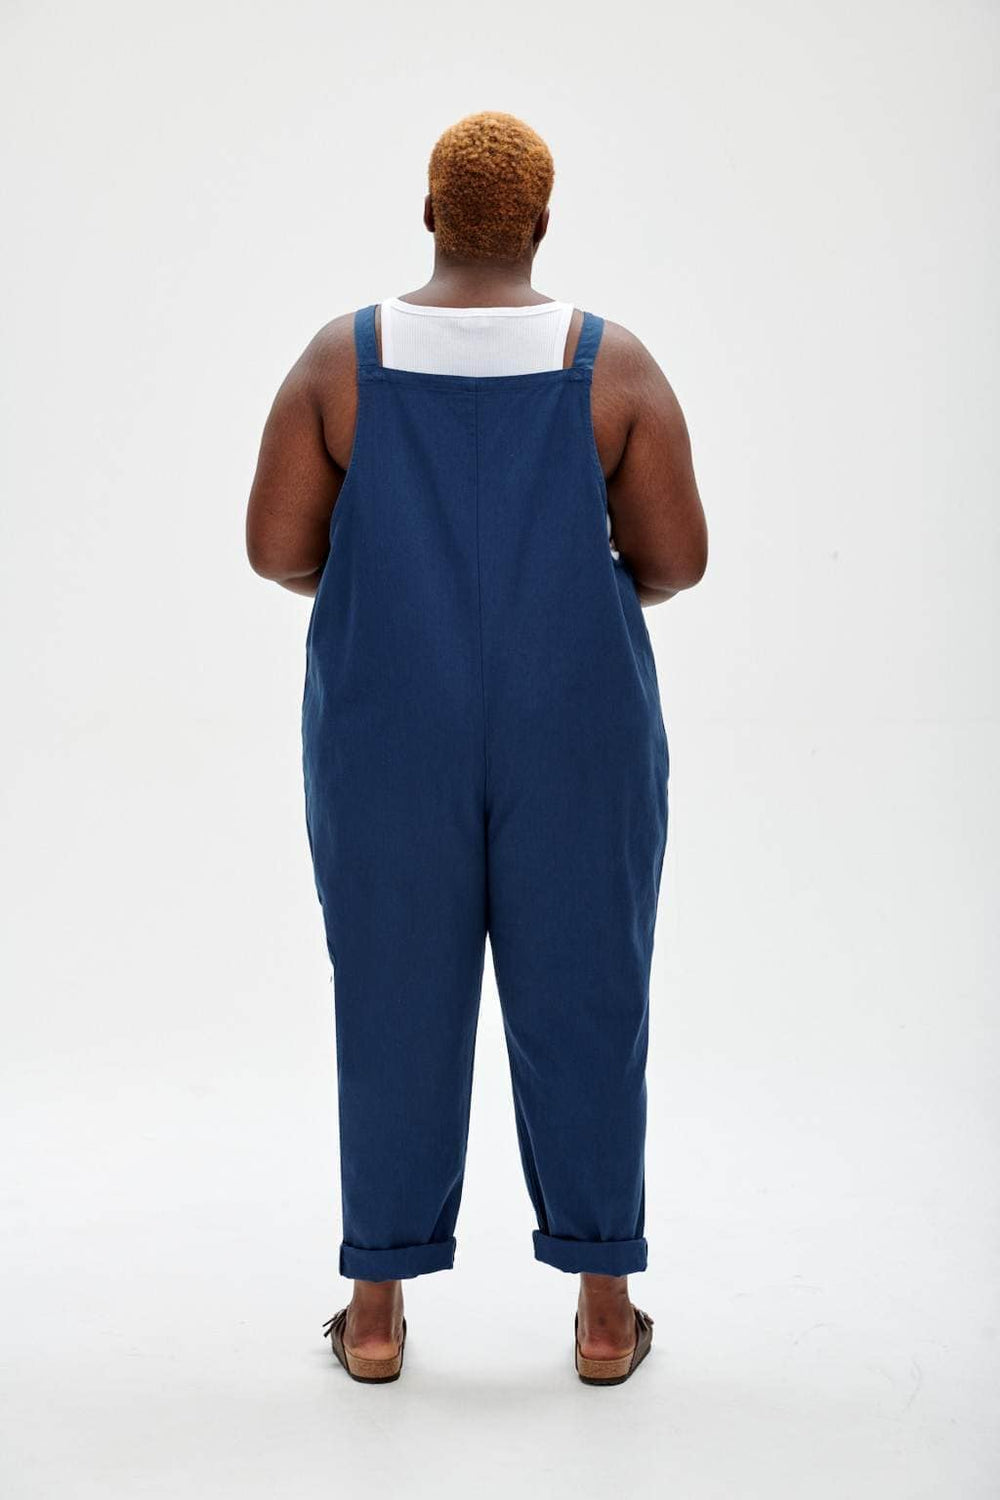 Lucy & Yak Dungarees Easton - Organic Dungarees In Light-Wash Blue Denim